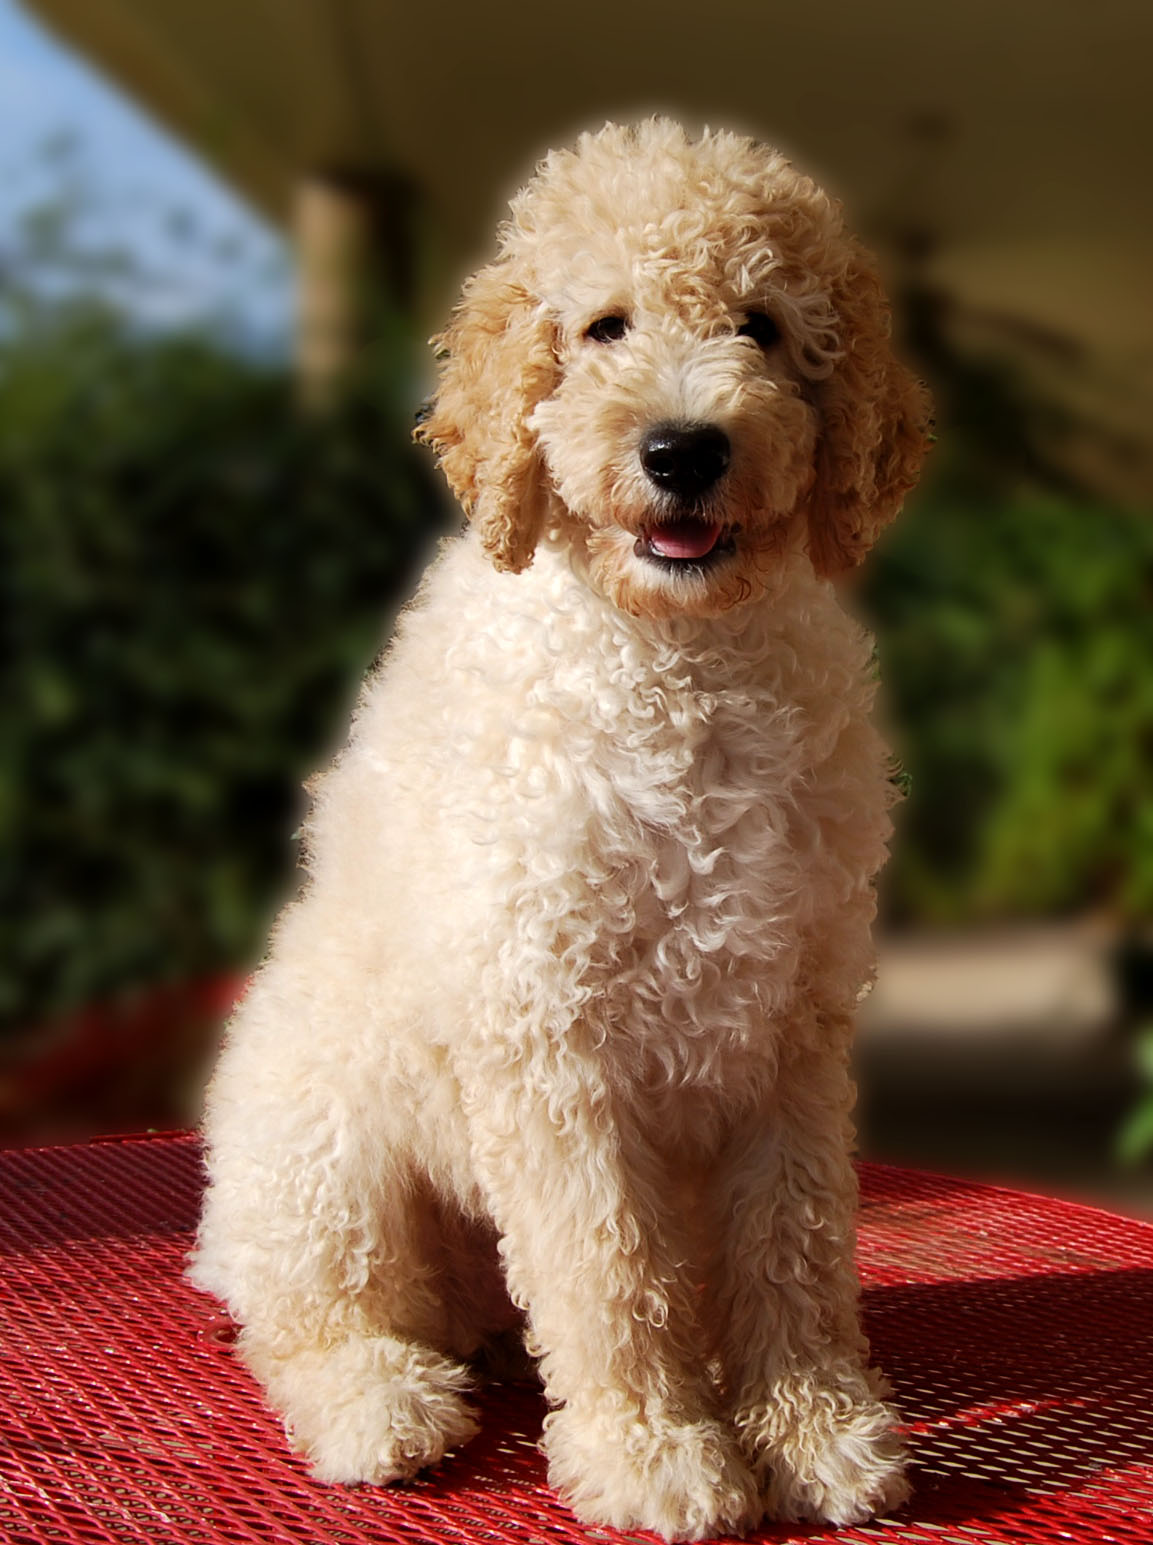 Pictures of Labradoodle Haircuts http://sweetiepiepups.blogspot.com/2010/07/guess-who-got-haircut.html